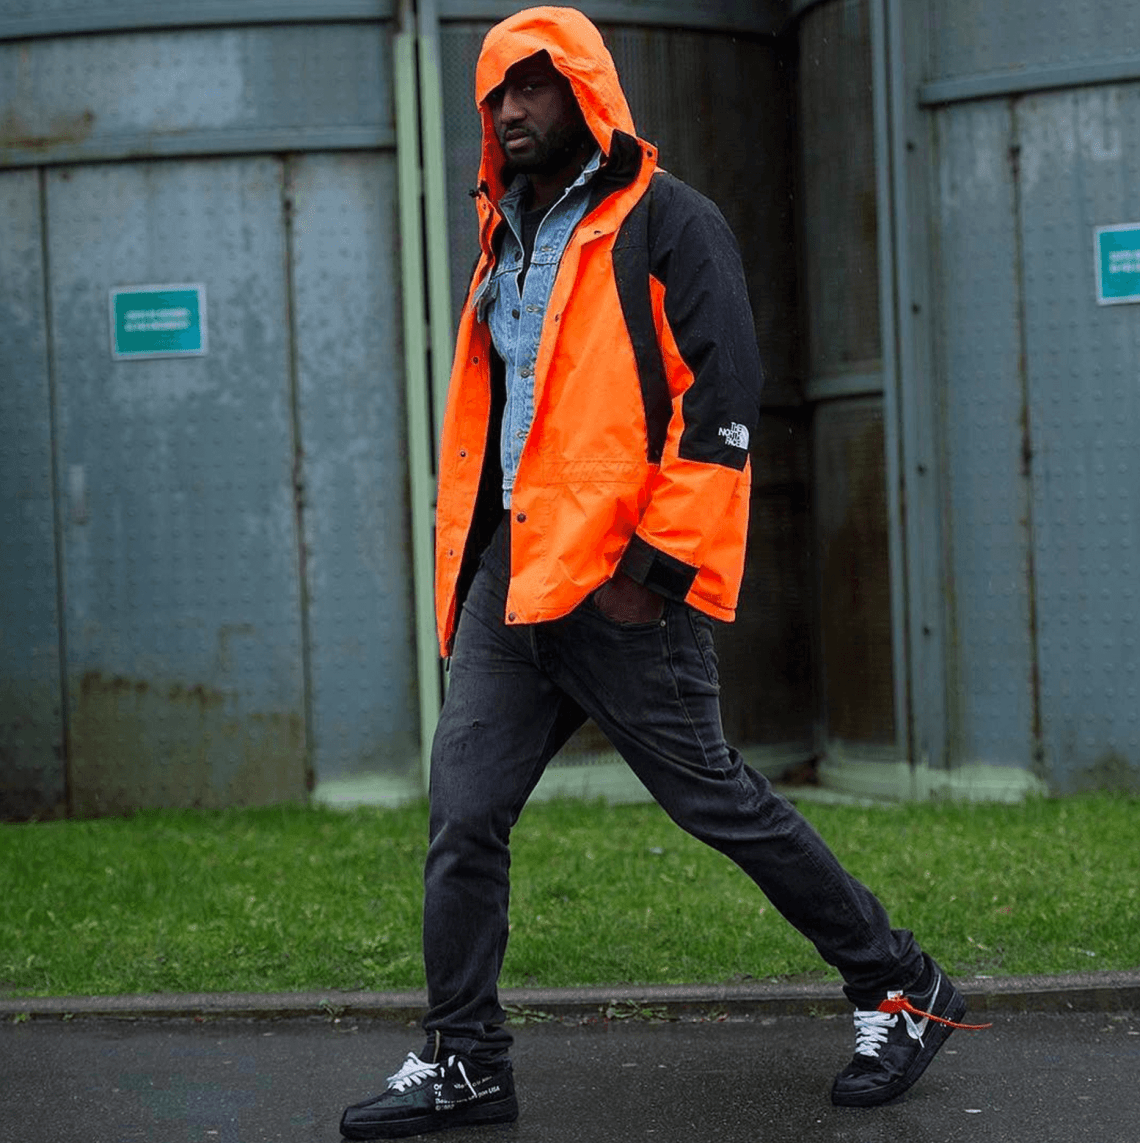 ... Nike Air More Uptempo Virgil Abloh in Nikelab Off-White x Air Force 1  Low 9d20967e9f9f